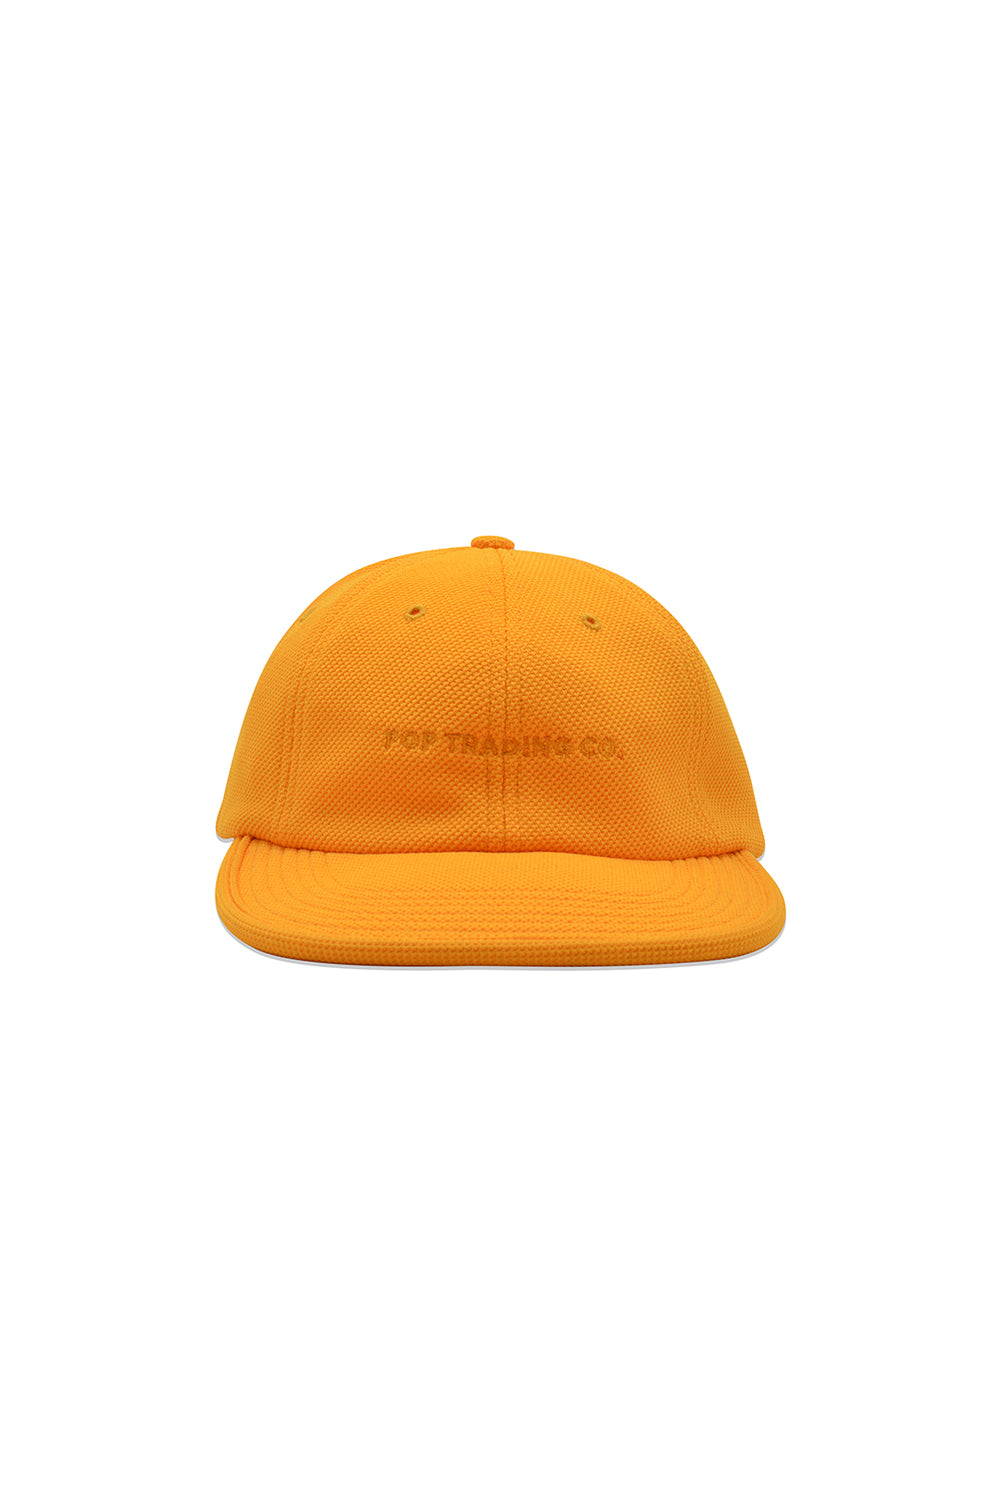 FLEXFOAM 6 PANEL HAT (Burnt Yellow Diamond)【POP TRADING COMPANY】